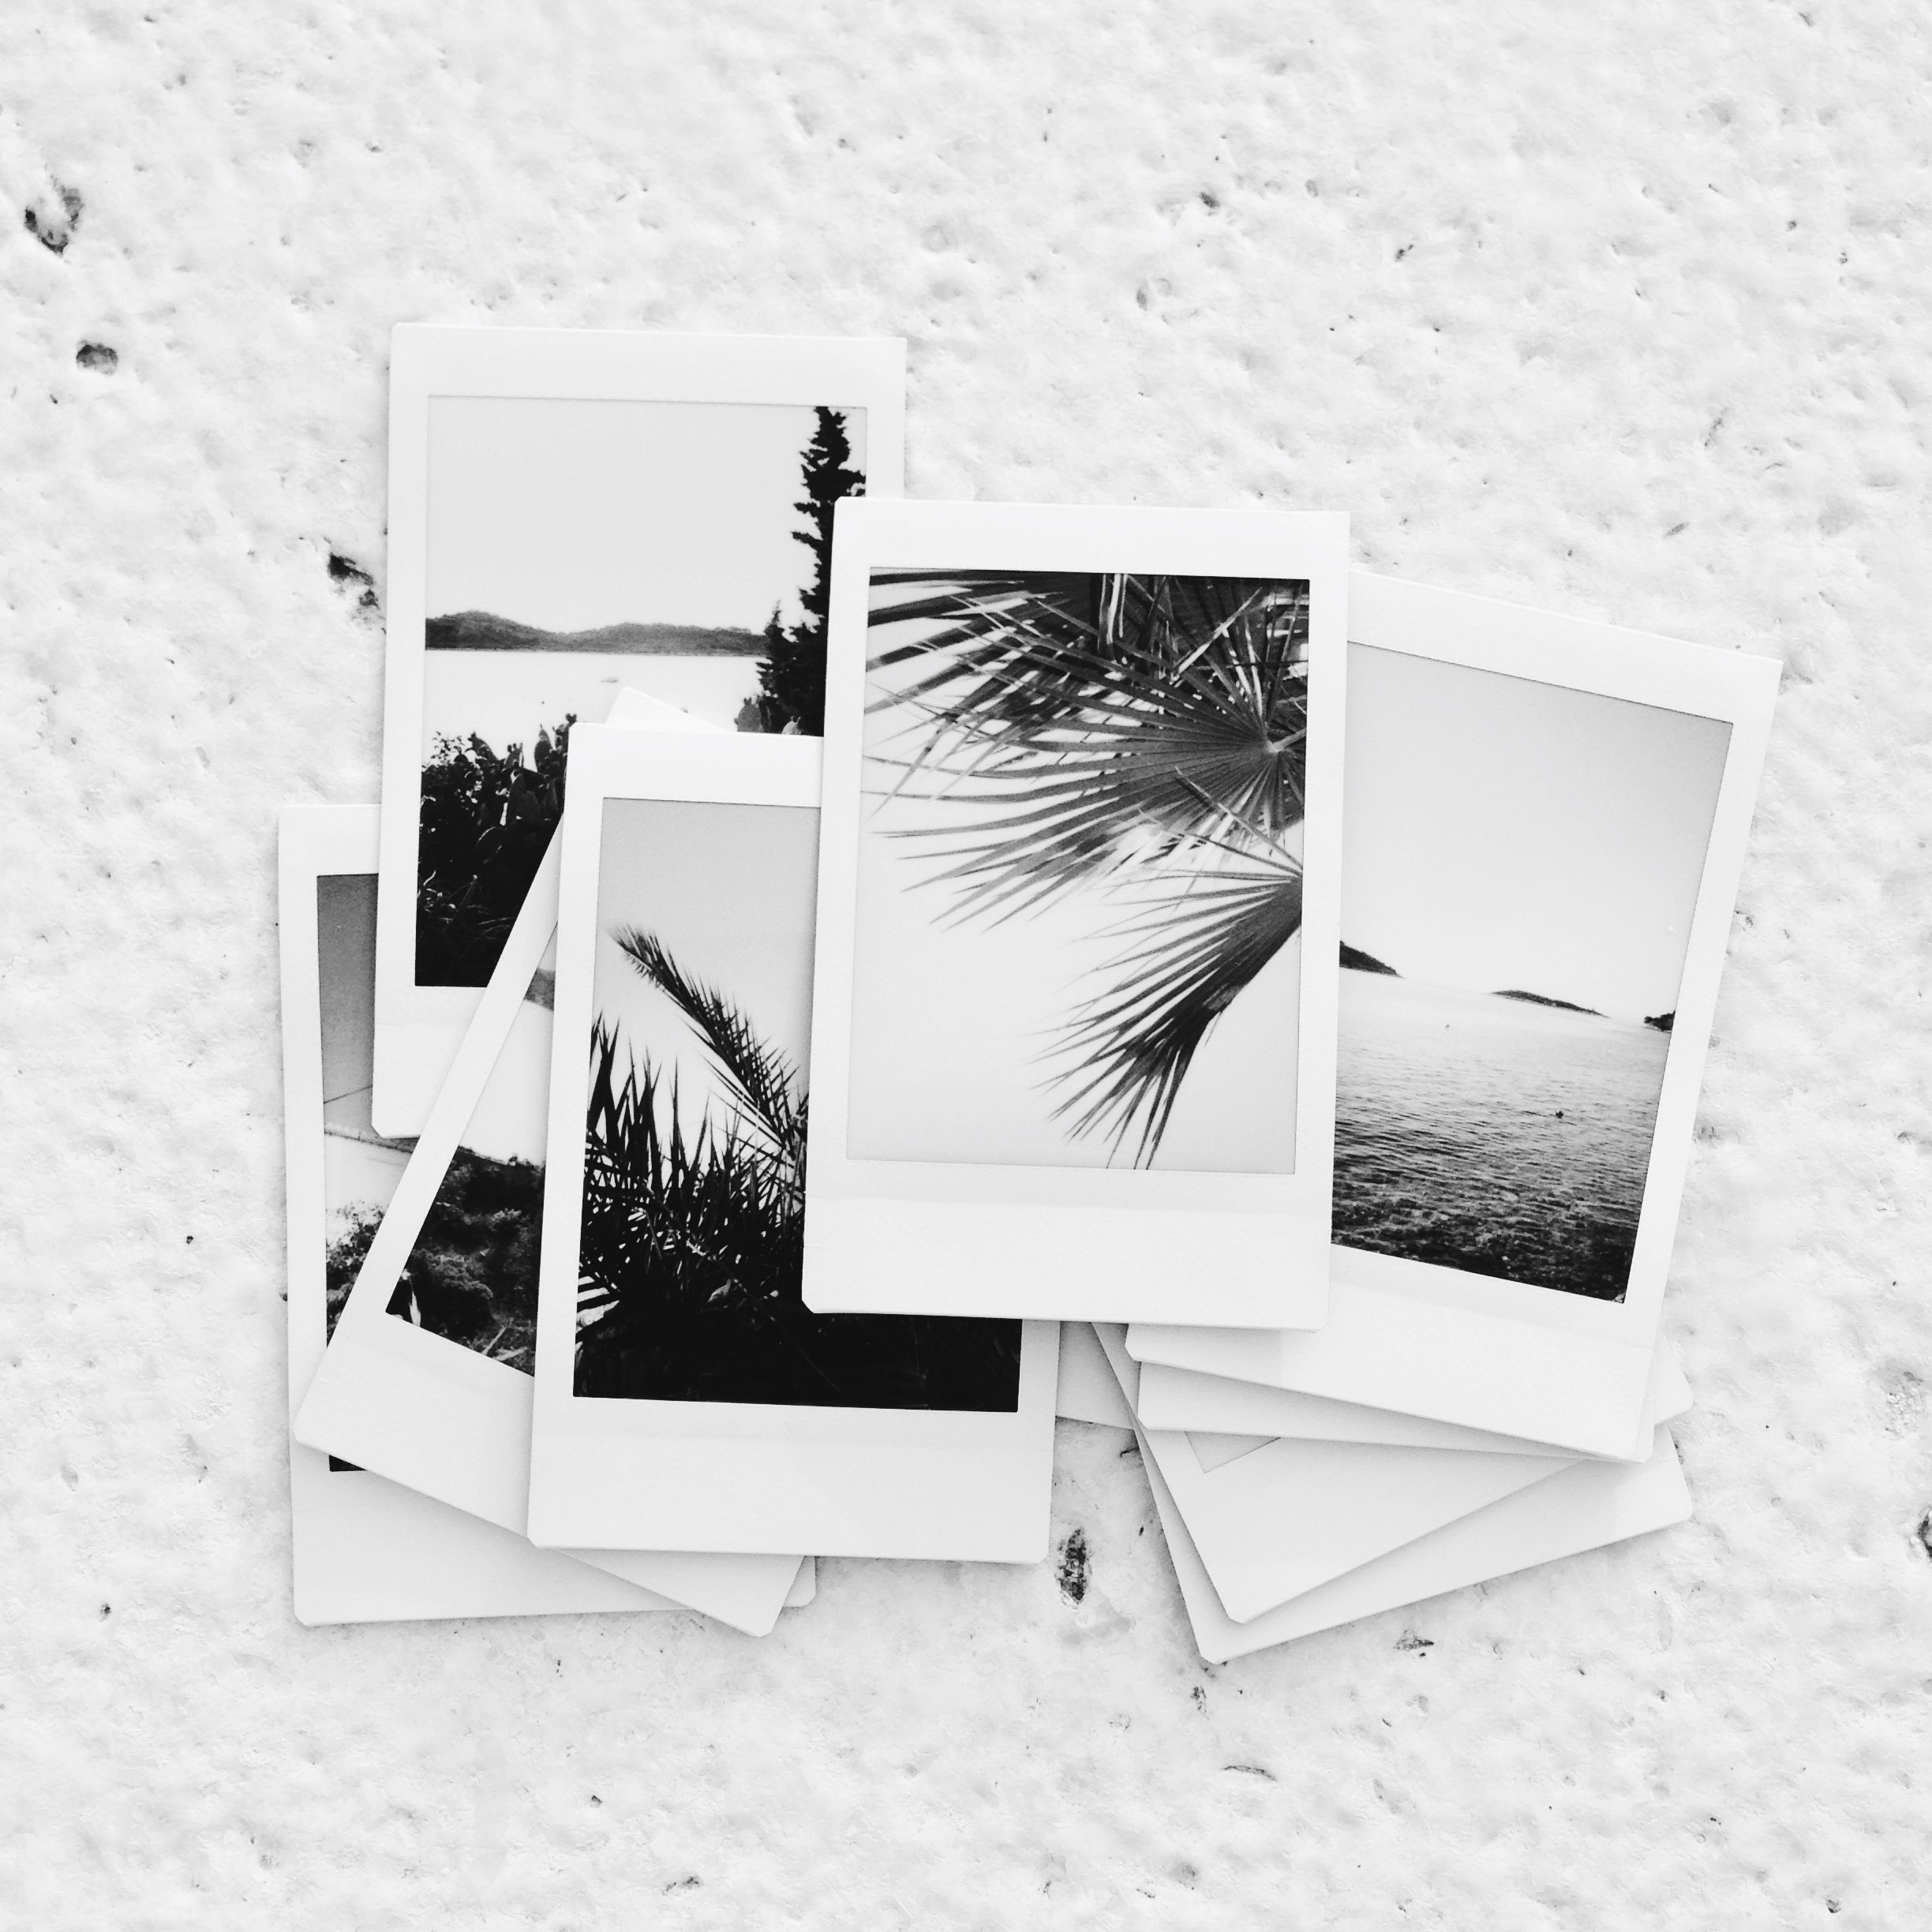 Pinterest Photos Noir Et Blanc Polaroïd Photos Noir Blanc Photos Pinterest Polaroid